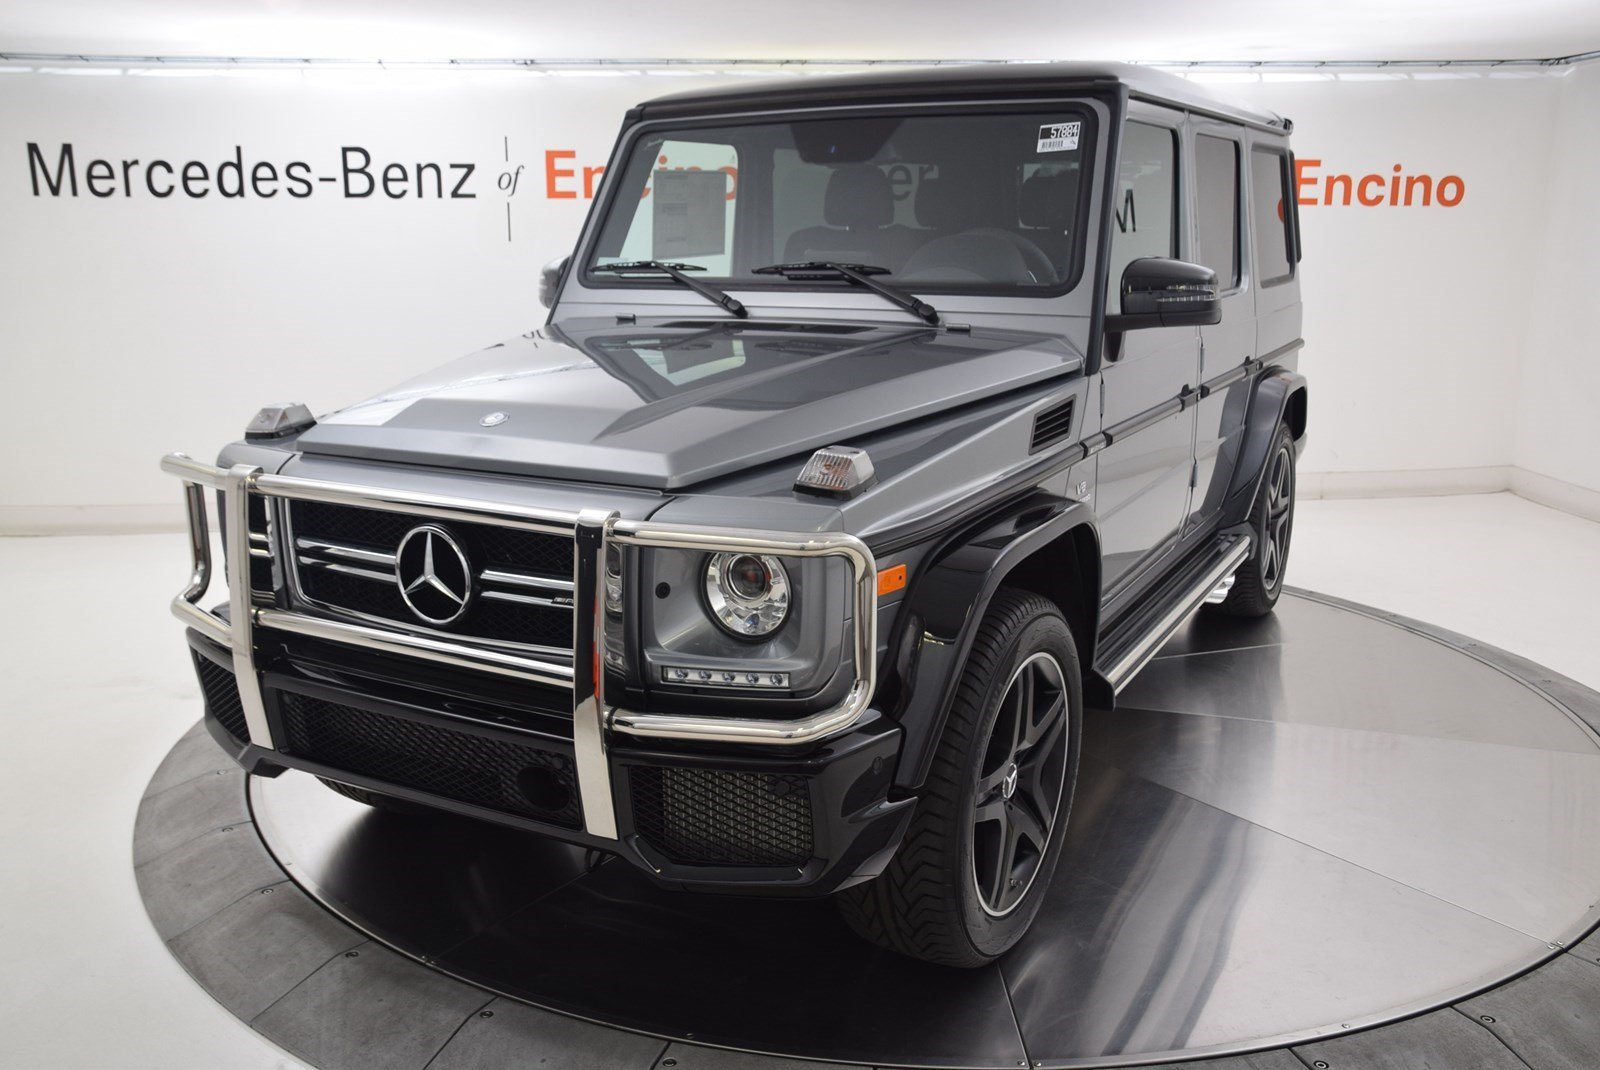 New 2017 mercedes benz g class amg g 63 suv suv in encino for Mercedes benz financial payment address